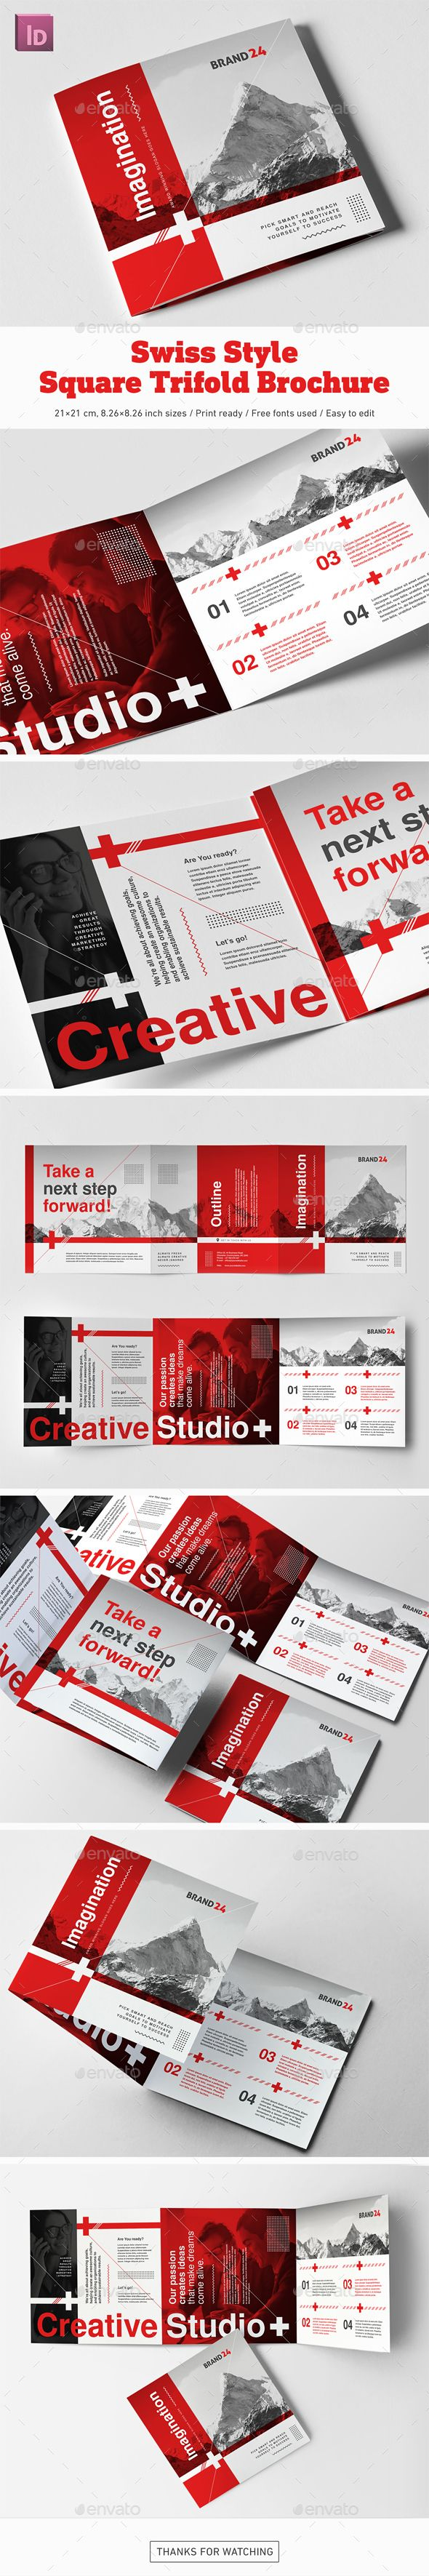 Swiss Style Square Trifold Brochure - #Corporate #Brochures Download here: https://graphicriver.net/item/swiss-style-square-trifold-brochure/20303422?ref=alena994